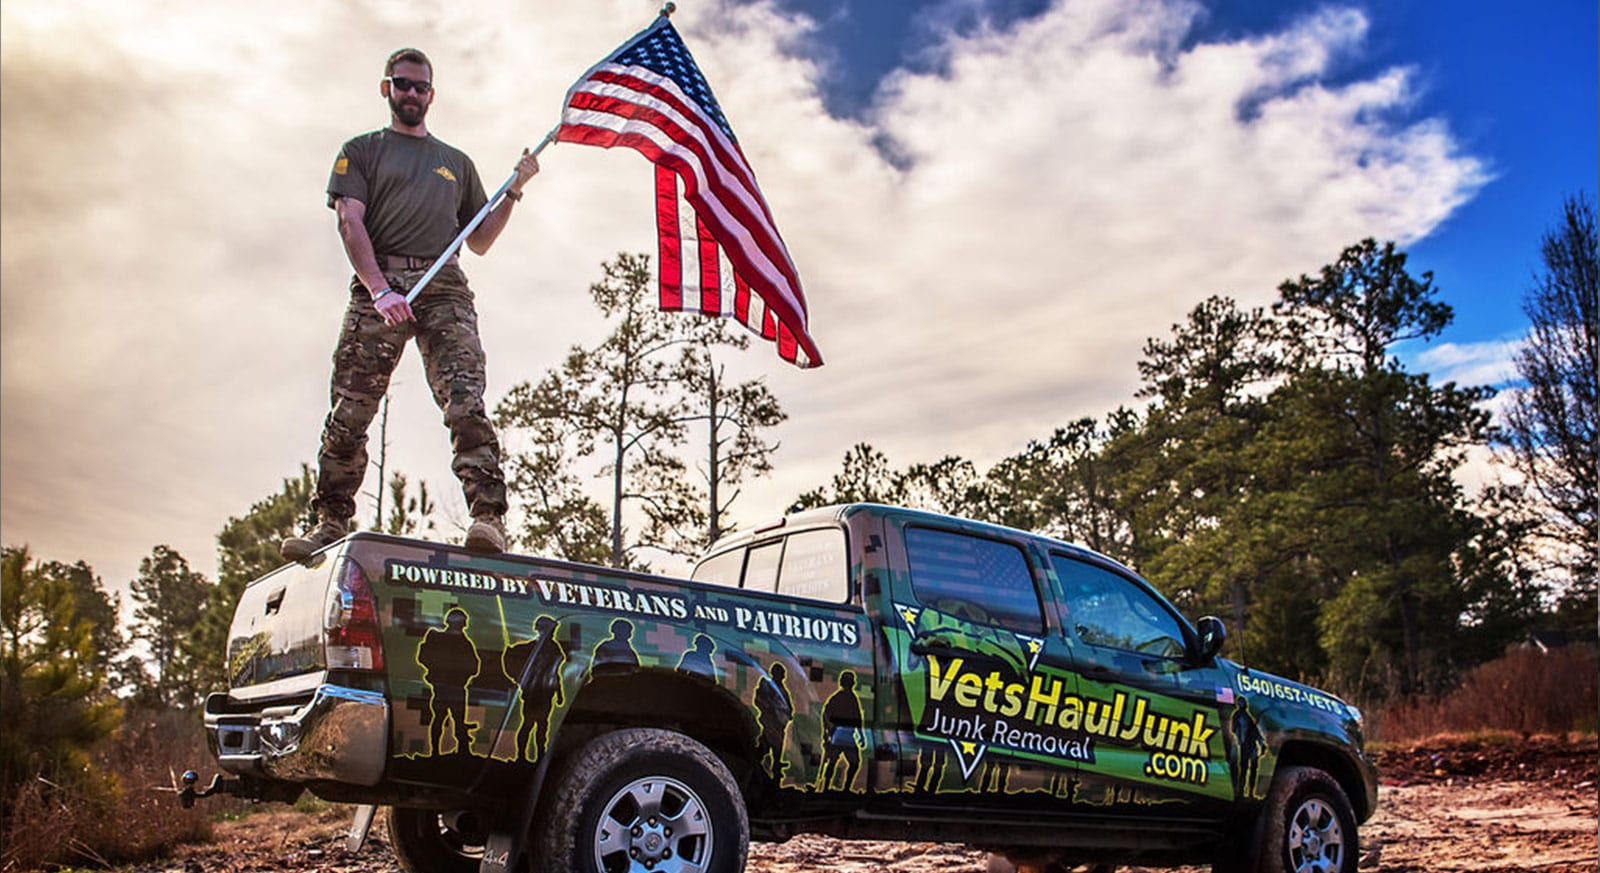 Veteran operated Junk removal services in Stafford, VA